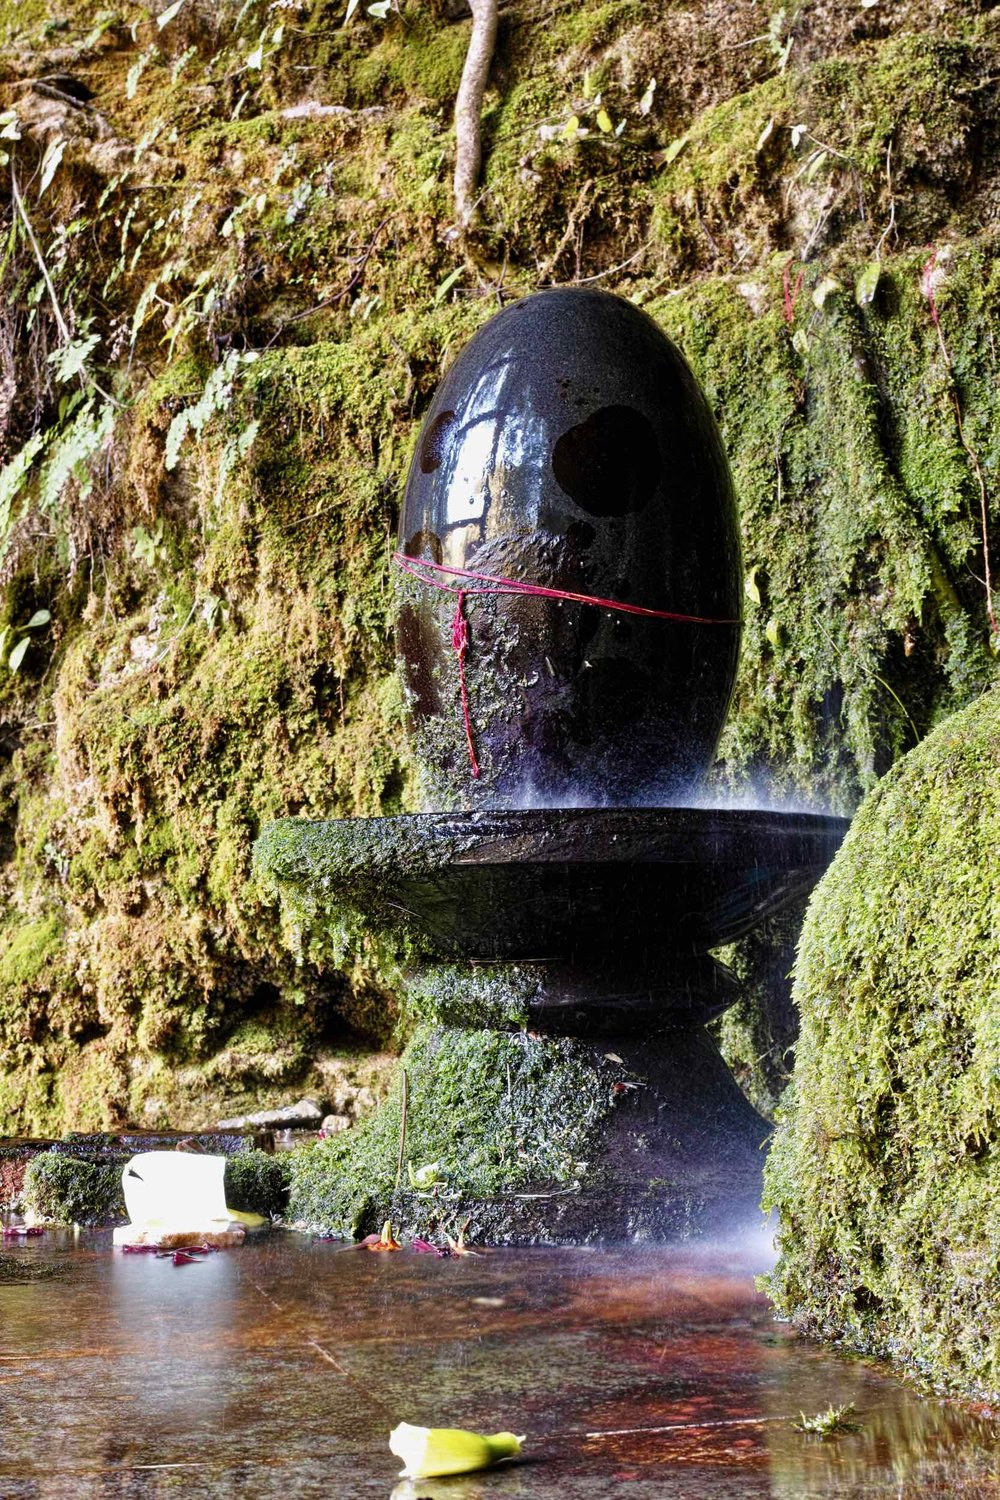 Shiva Temple near Mossy Fall - Barlowganj